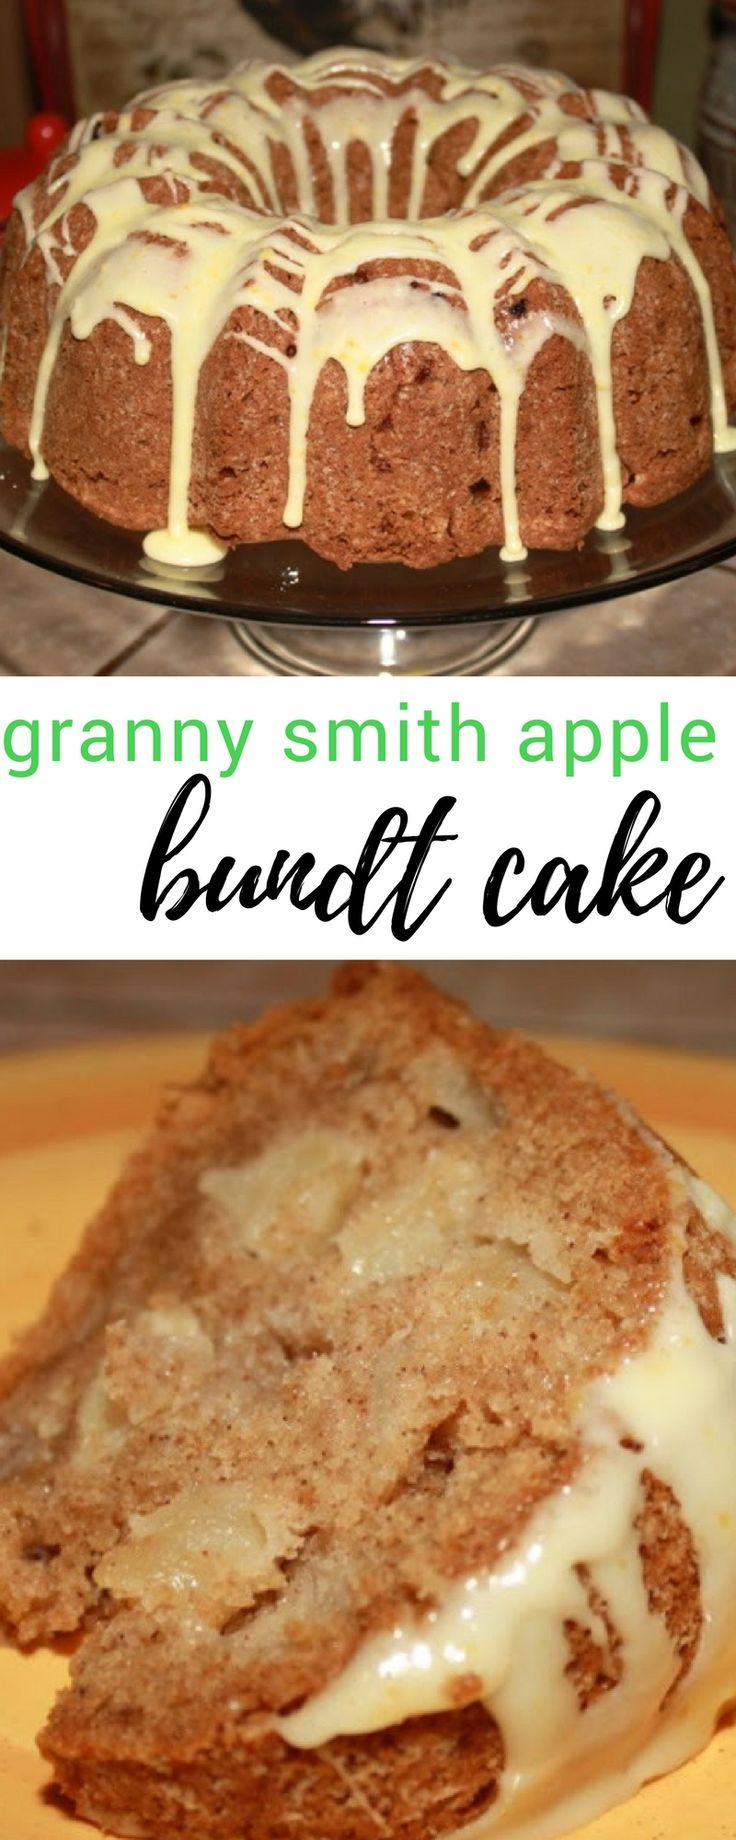 The best fall dessert recipe! We love this granny smith apple bundt cake!